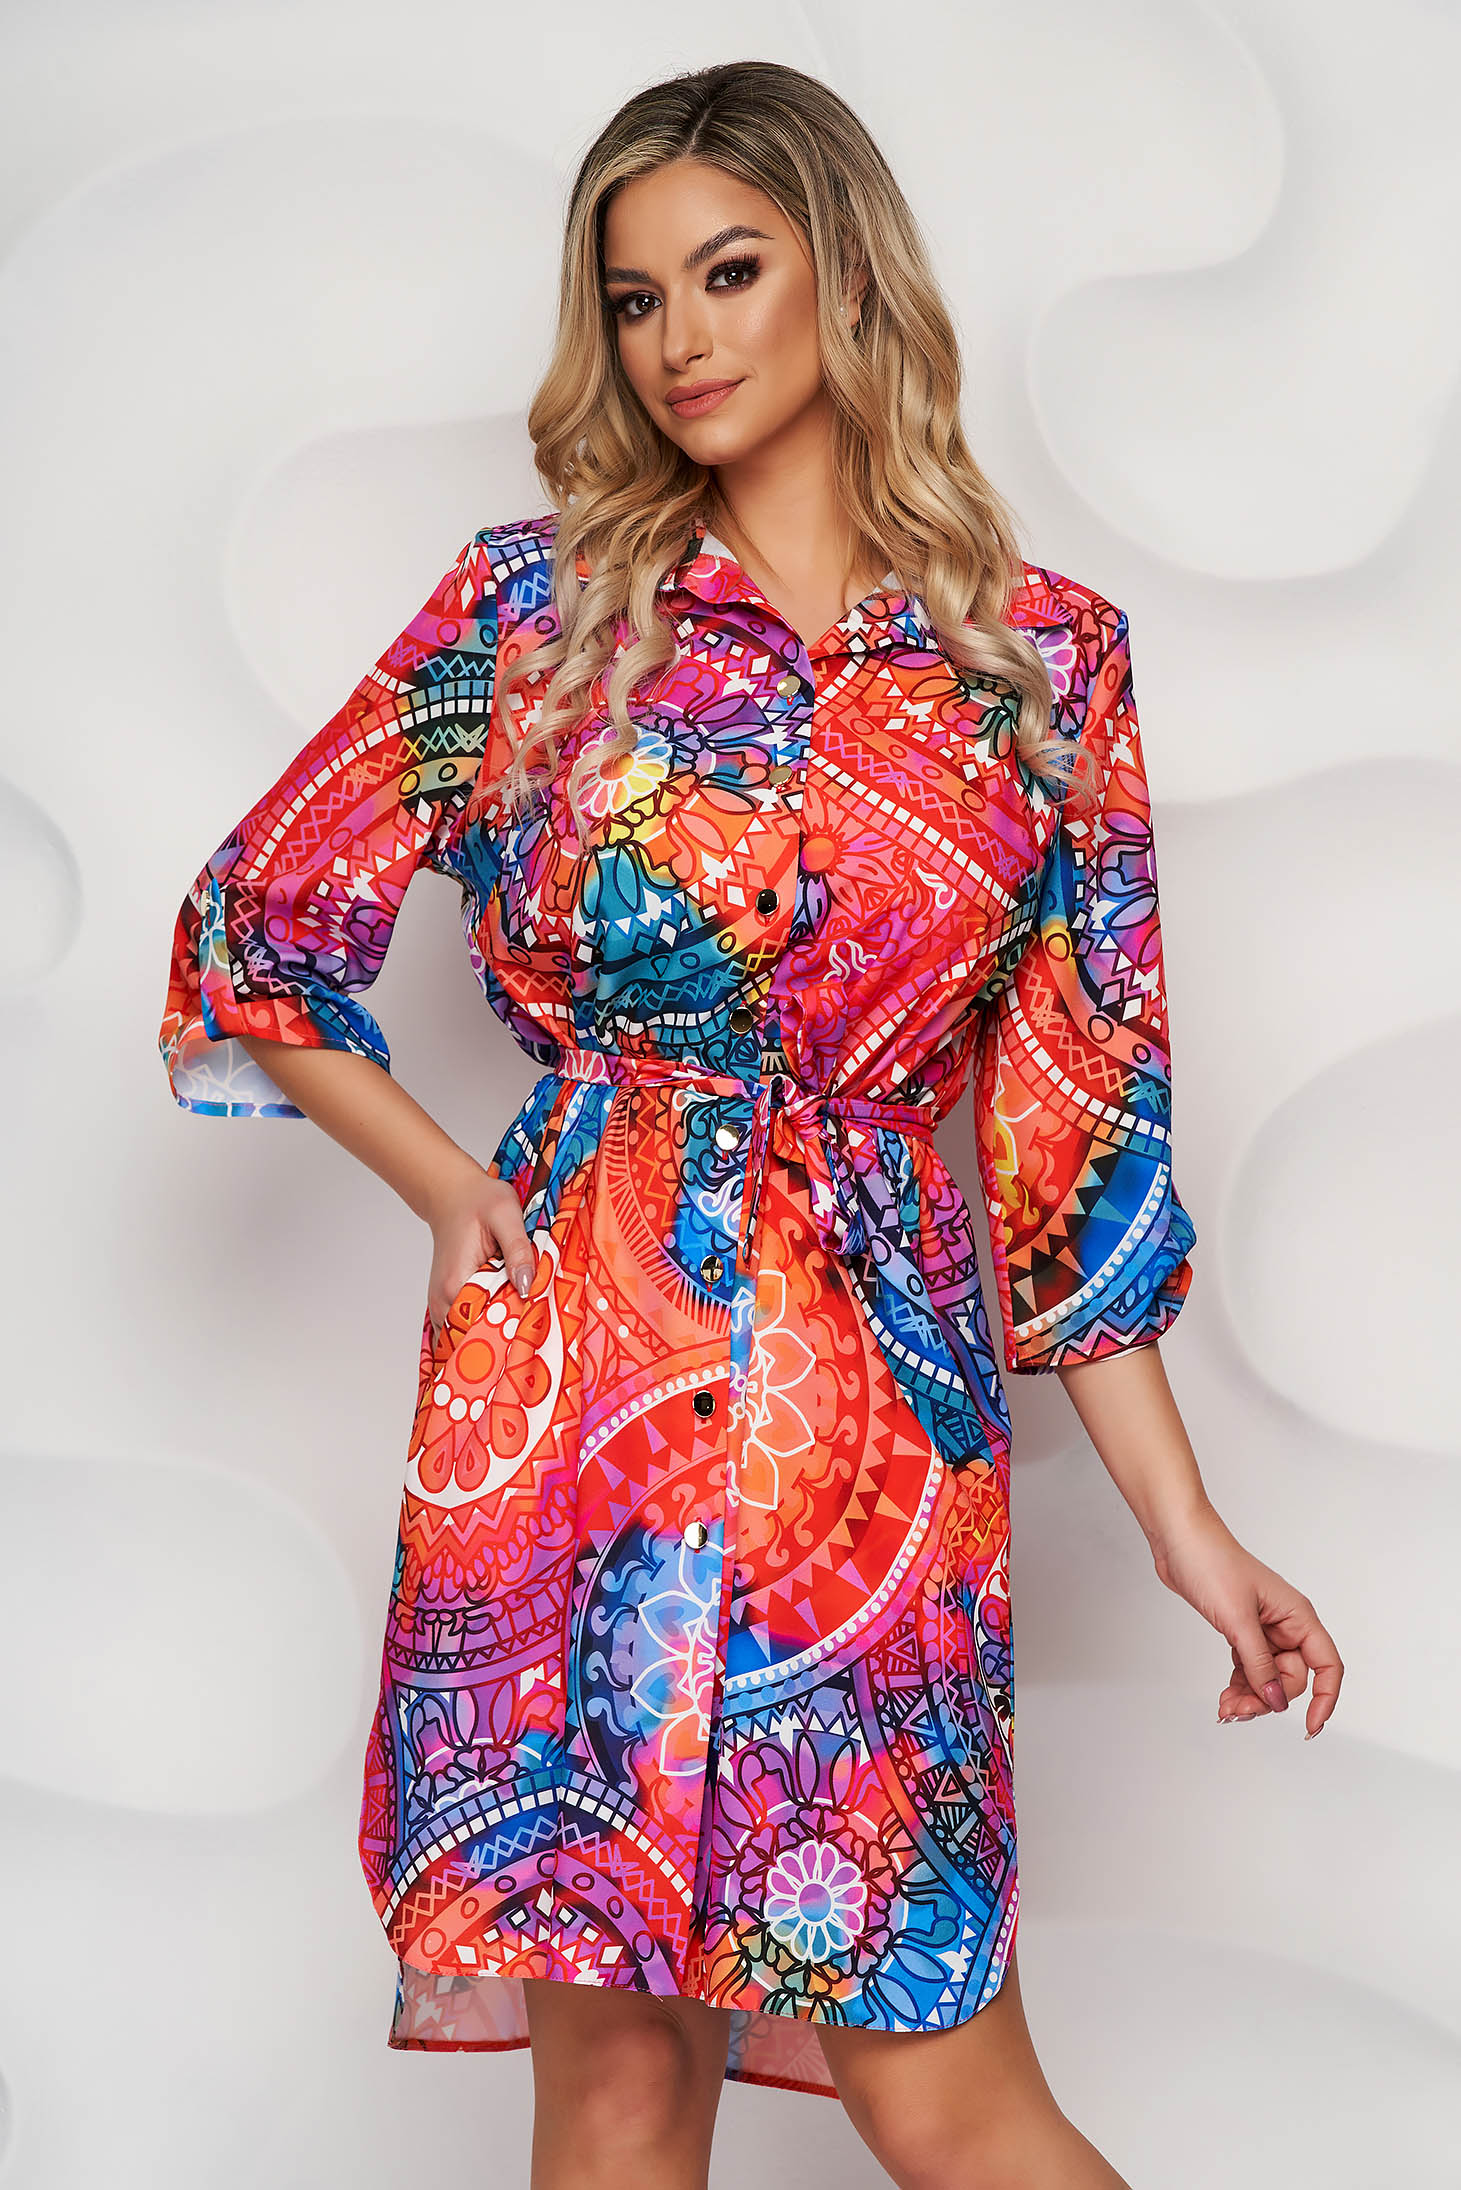 StarShinerS dress with floral print accessorized with tied waistband slightly elastic fabric